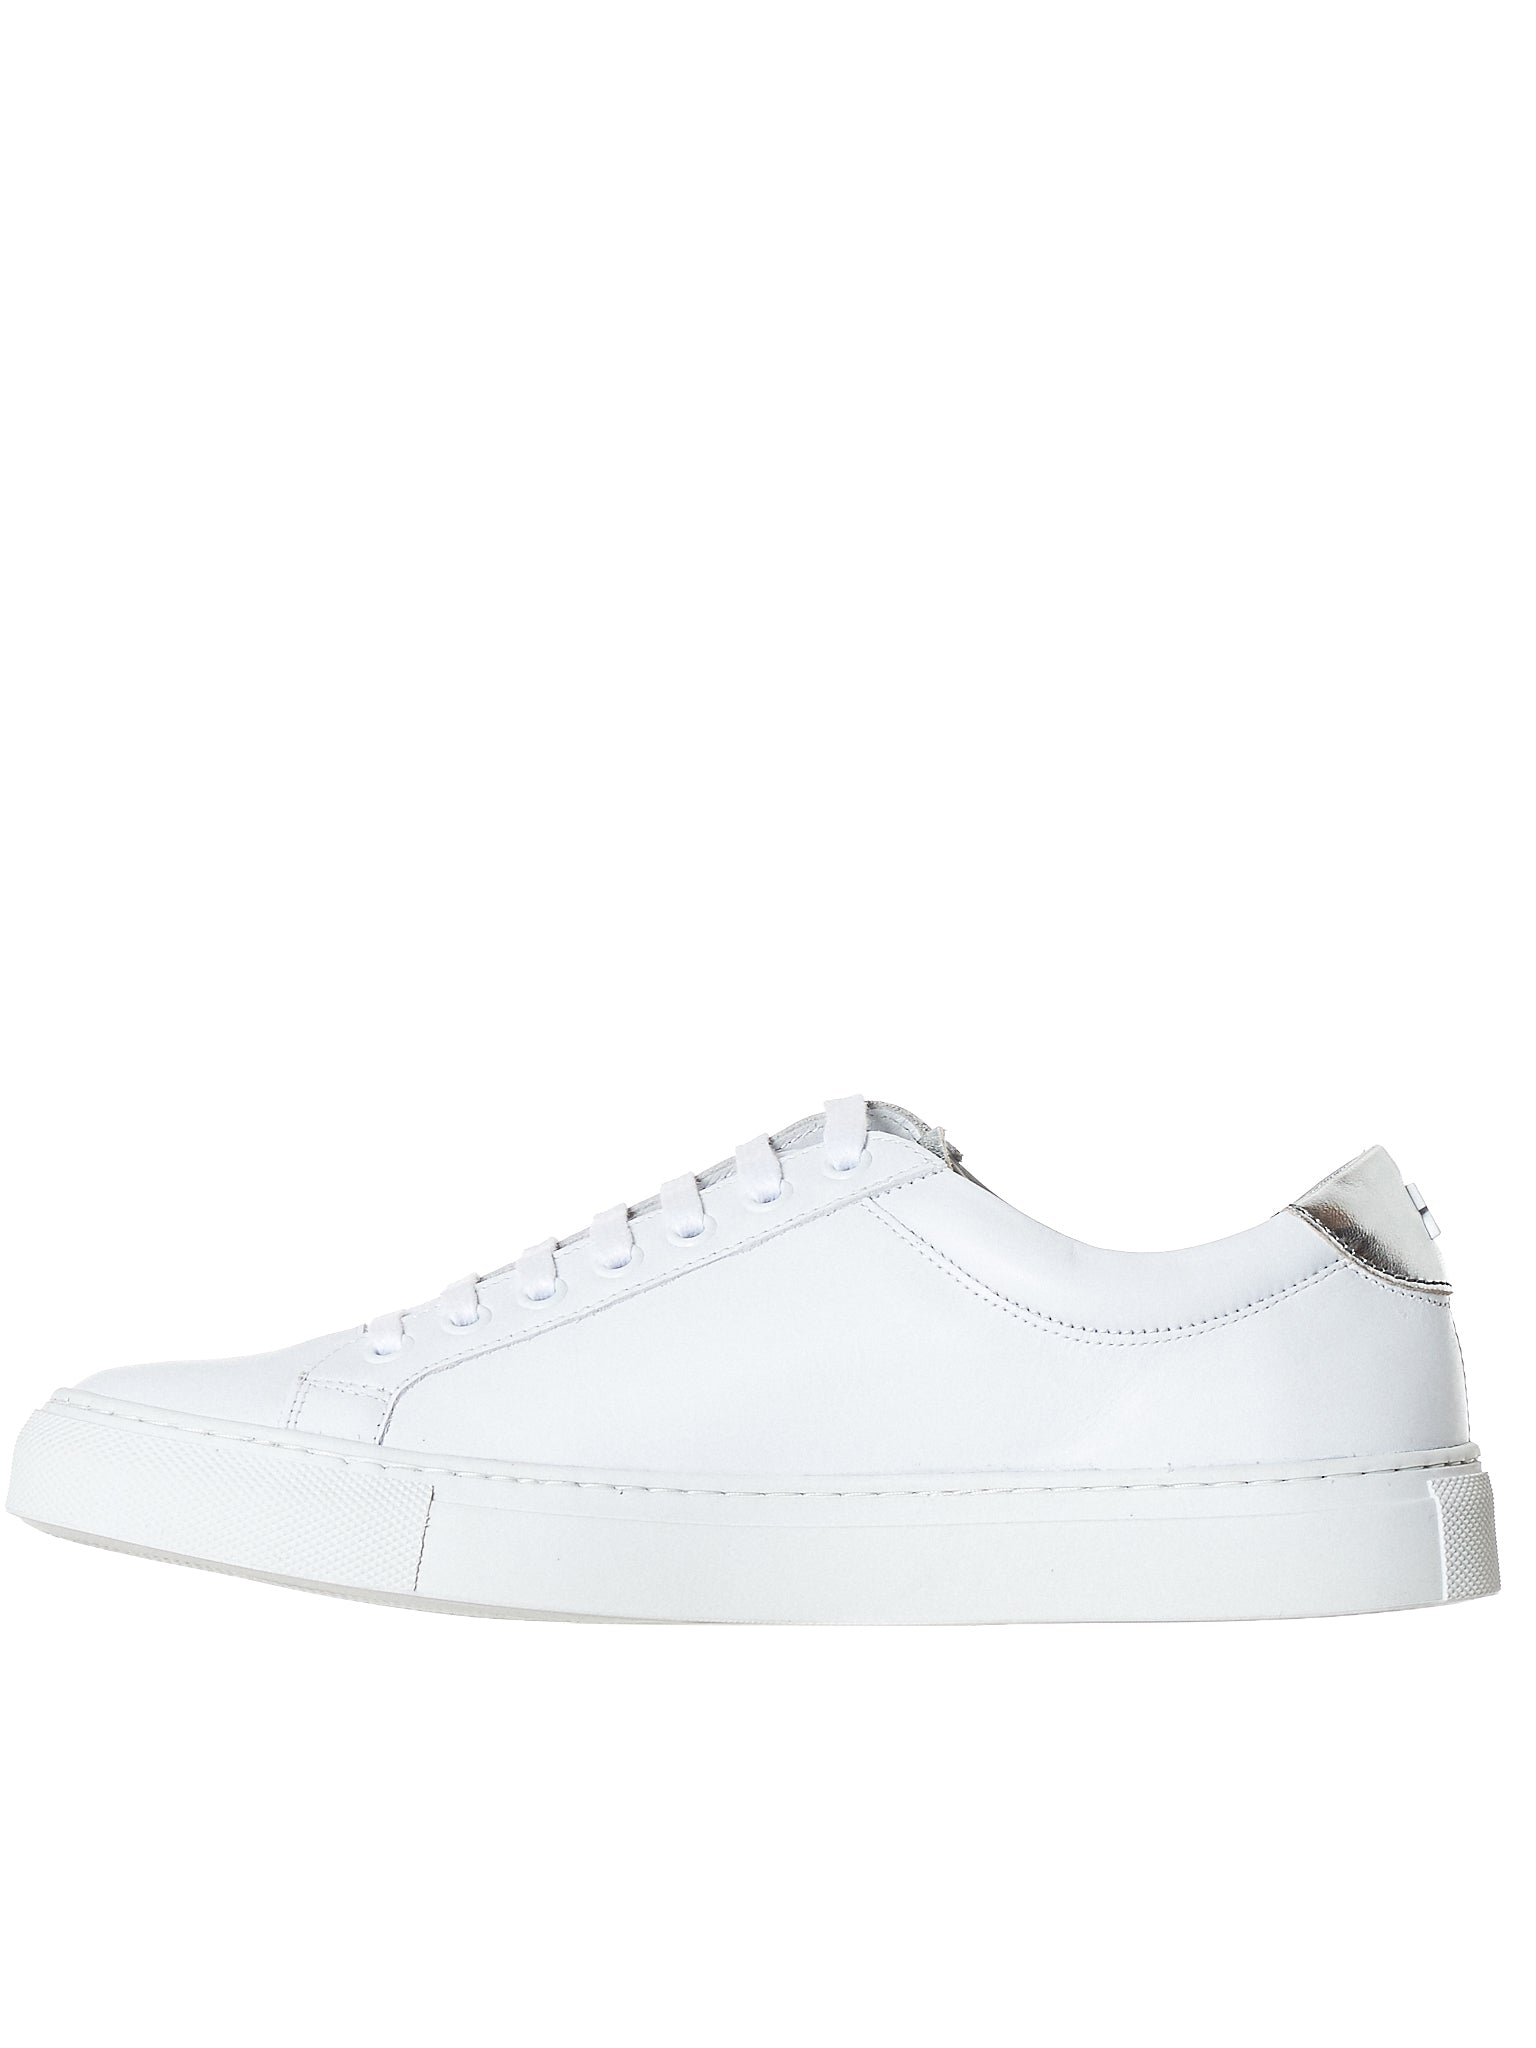 Courreges white sneaker - H.Lorenzo Side 3